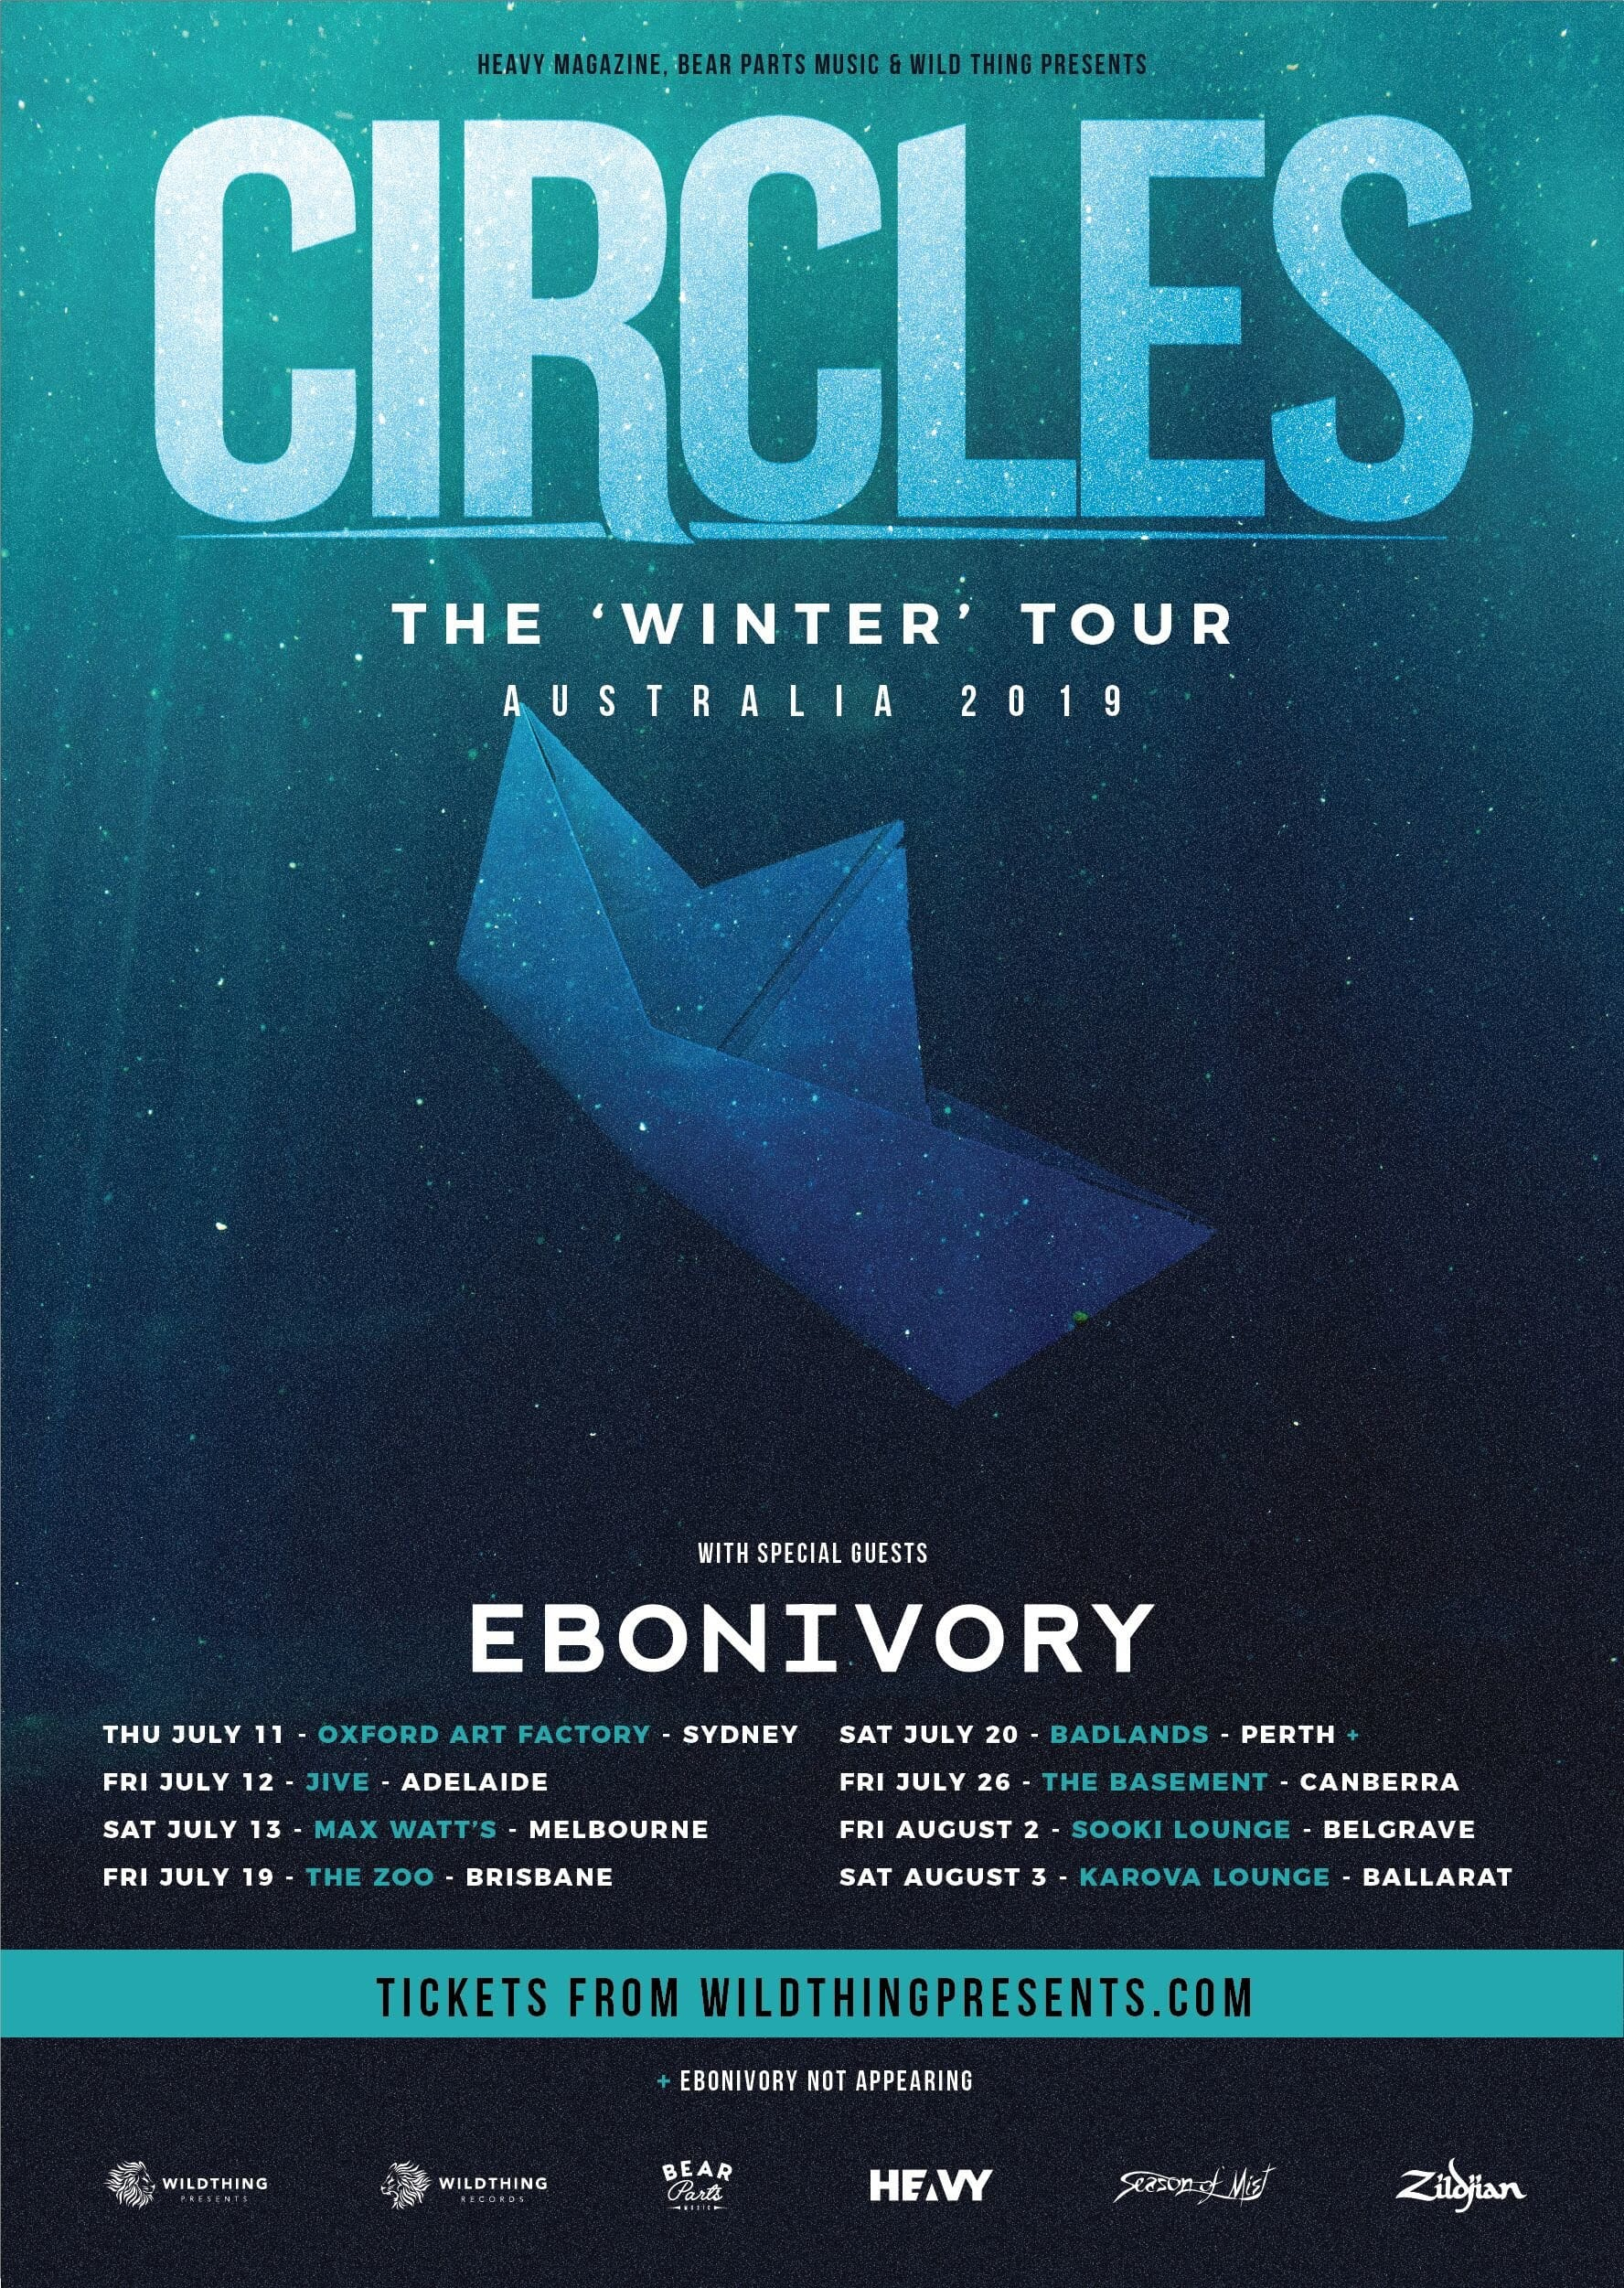 Ebonivory & Circles Tour Poster - HEAVY Magazine